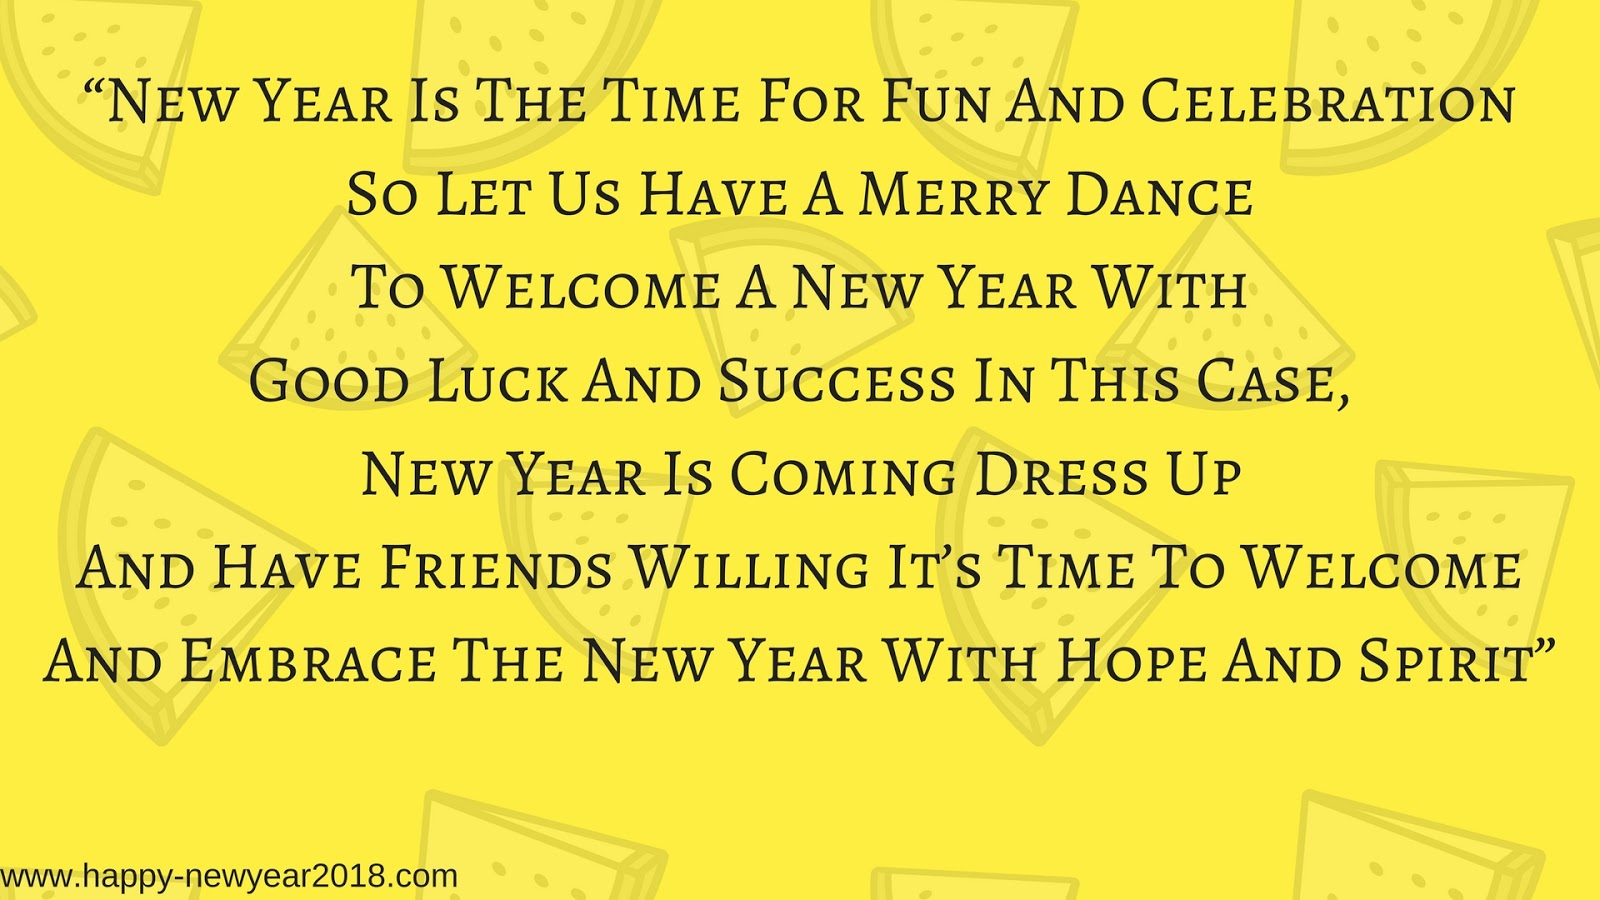 happy new year images happy new year 2018 gif happy new year 2018 photo